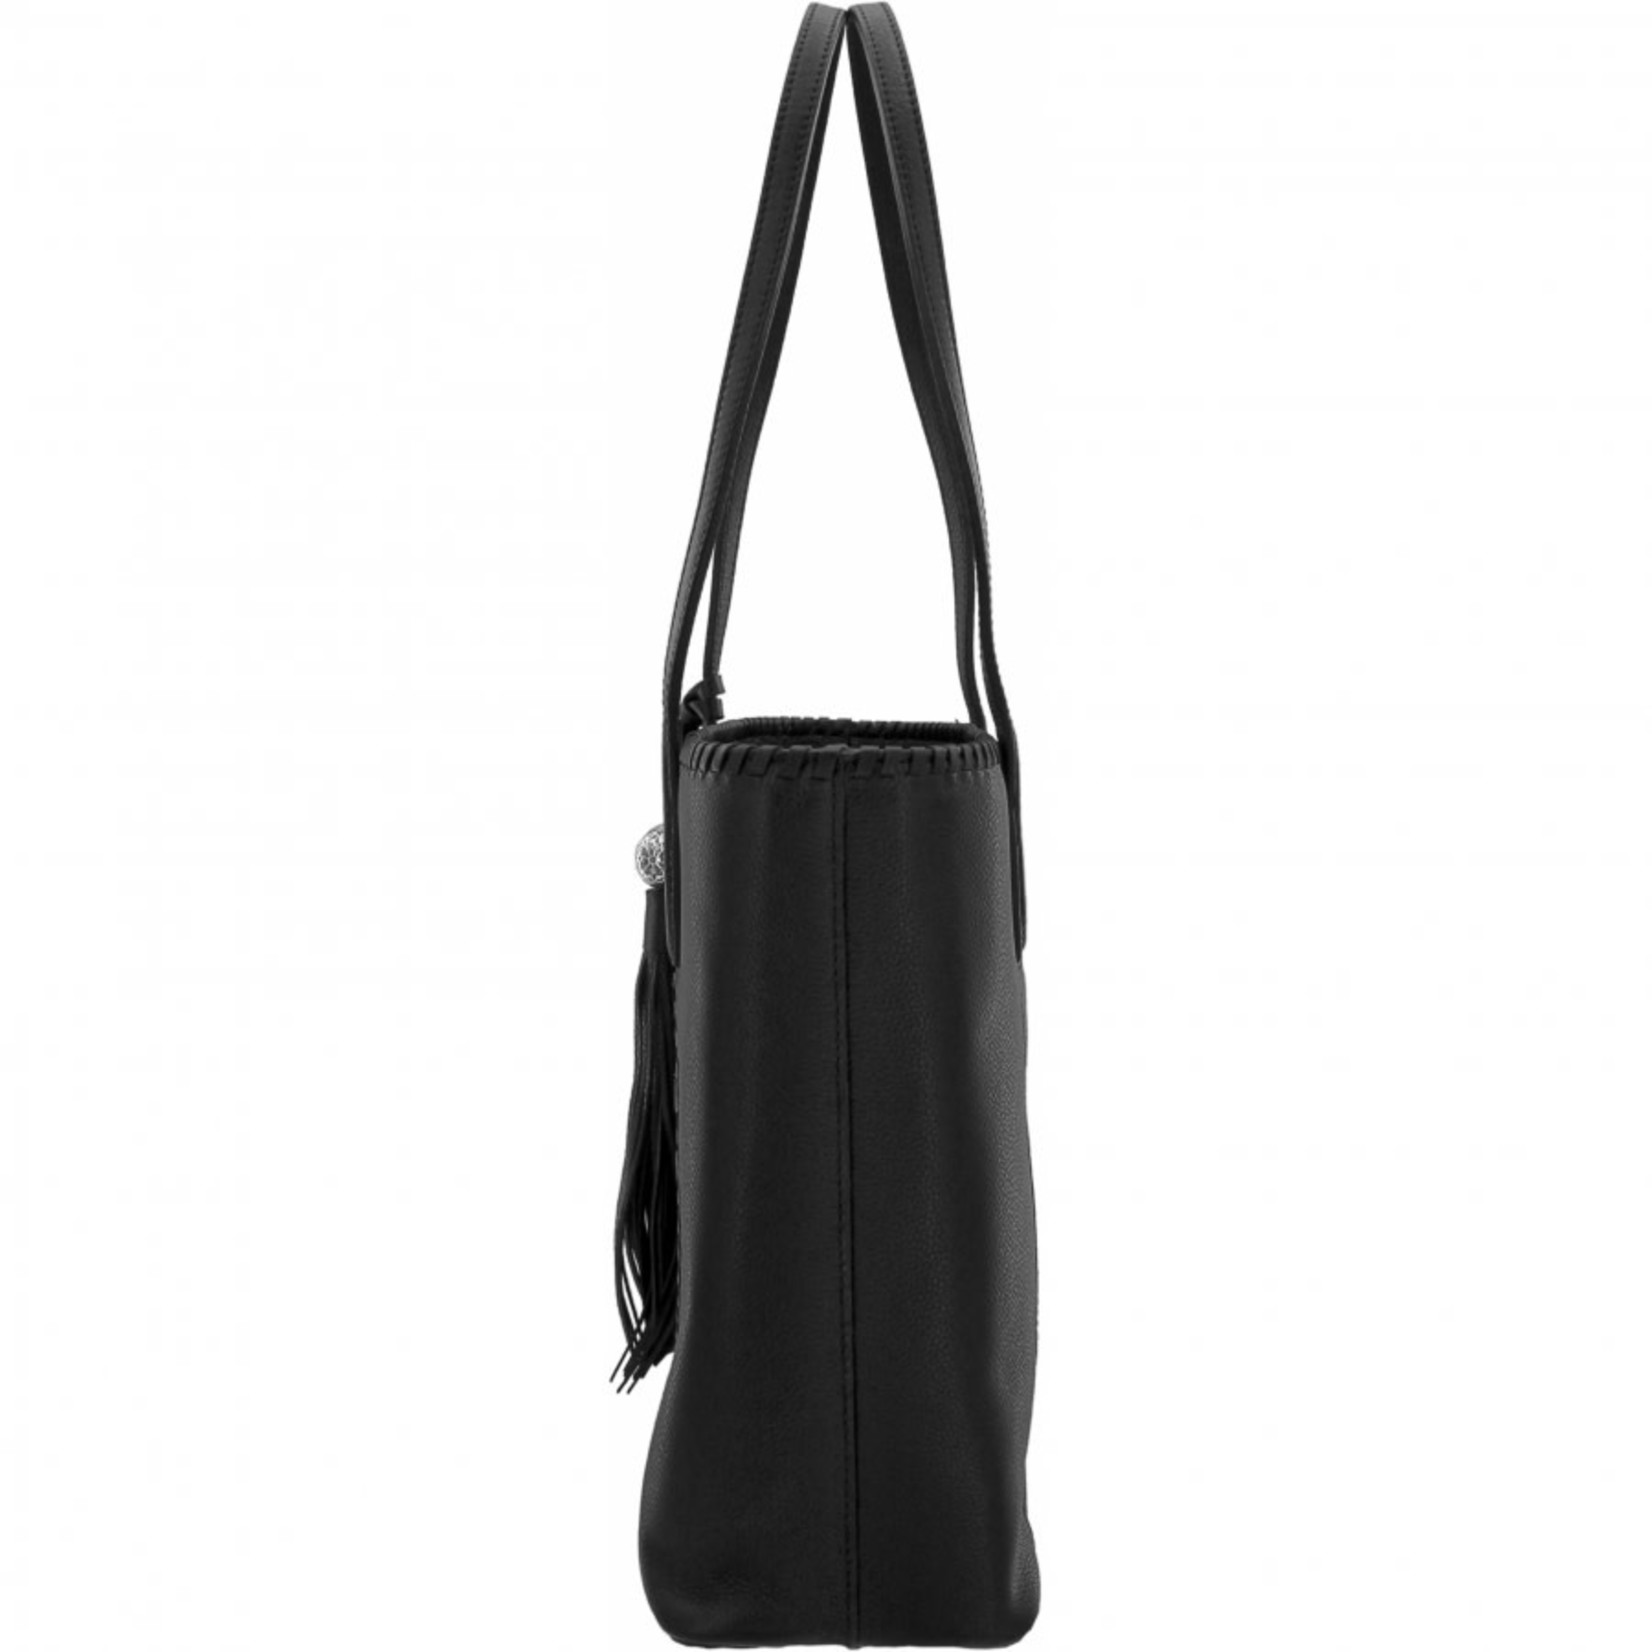 Brighton Gabriella Medallion Large Tote in Black